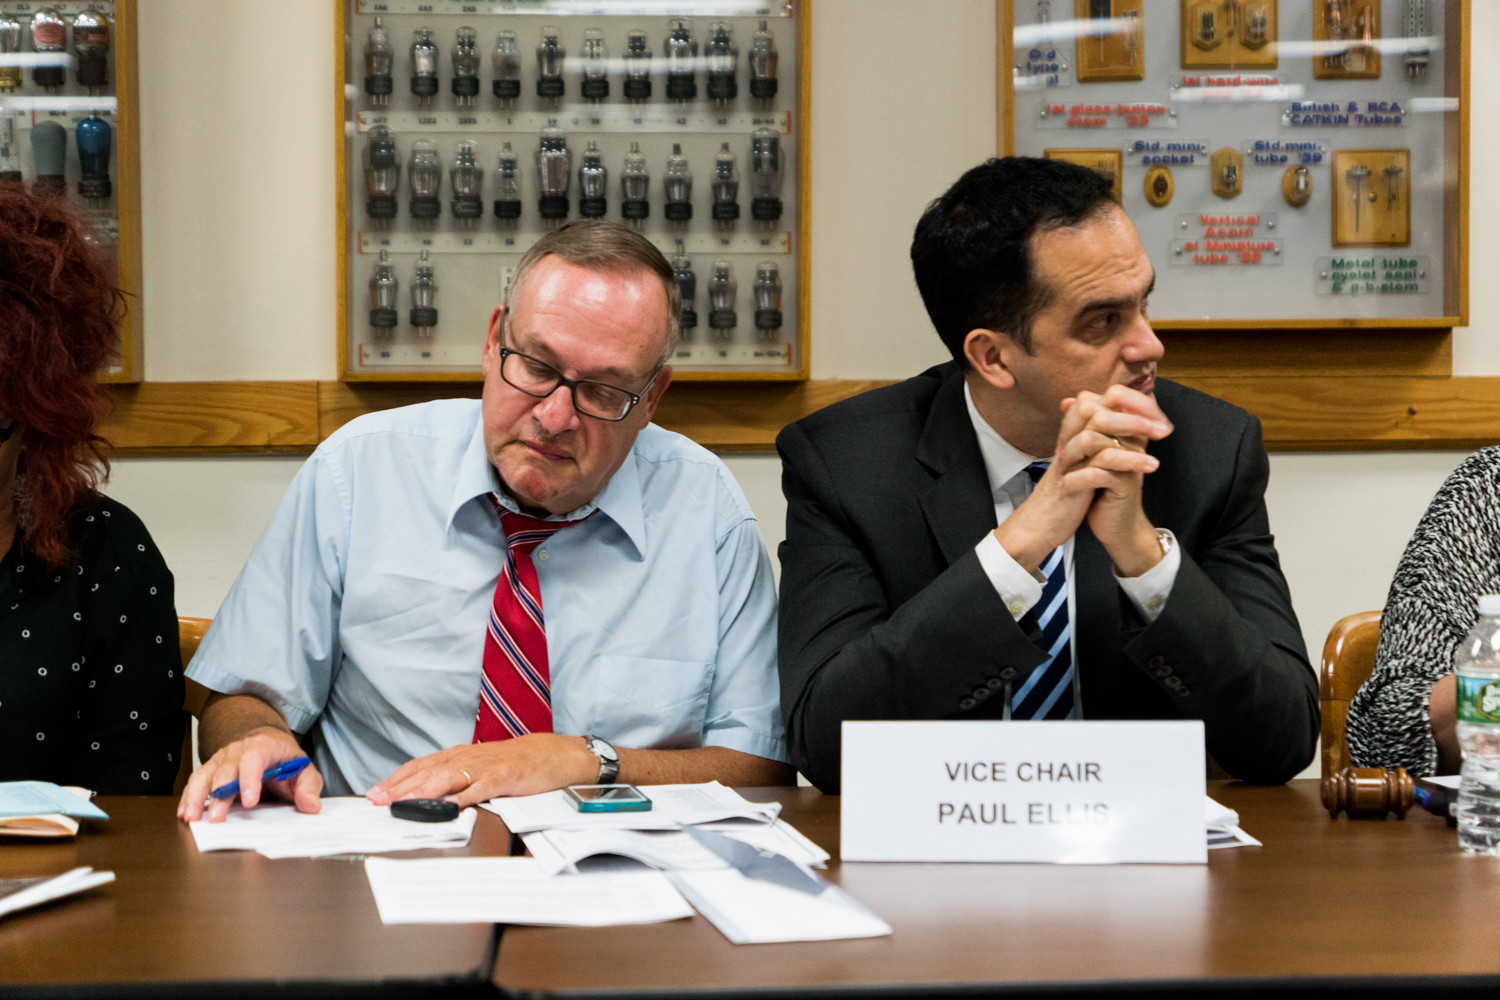 Michael Heller, left, the former district manager of Community Board 8, takes notes during a meeting last September. The search for a new district manager might be expanding, giving new potential candidates a chance to apply.